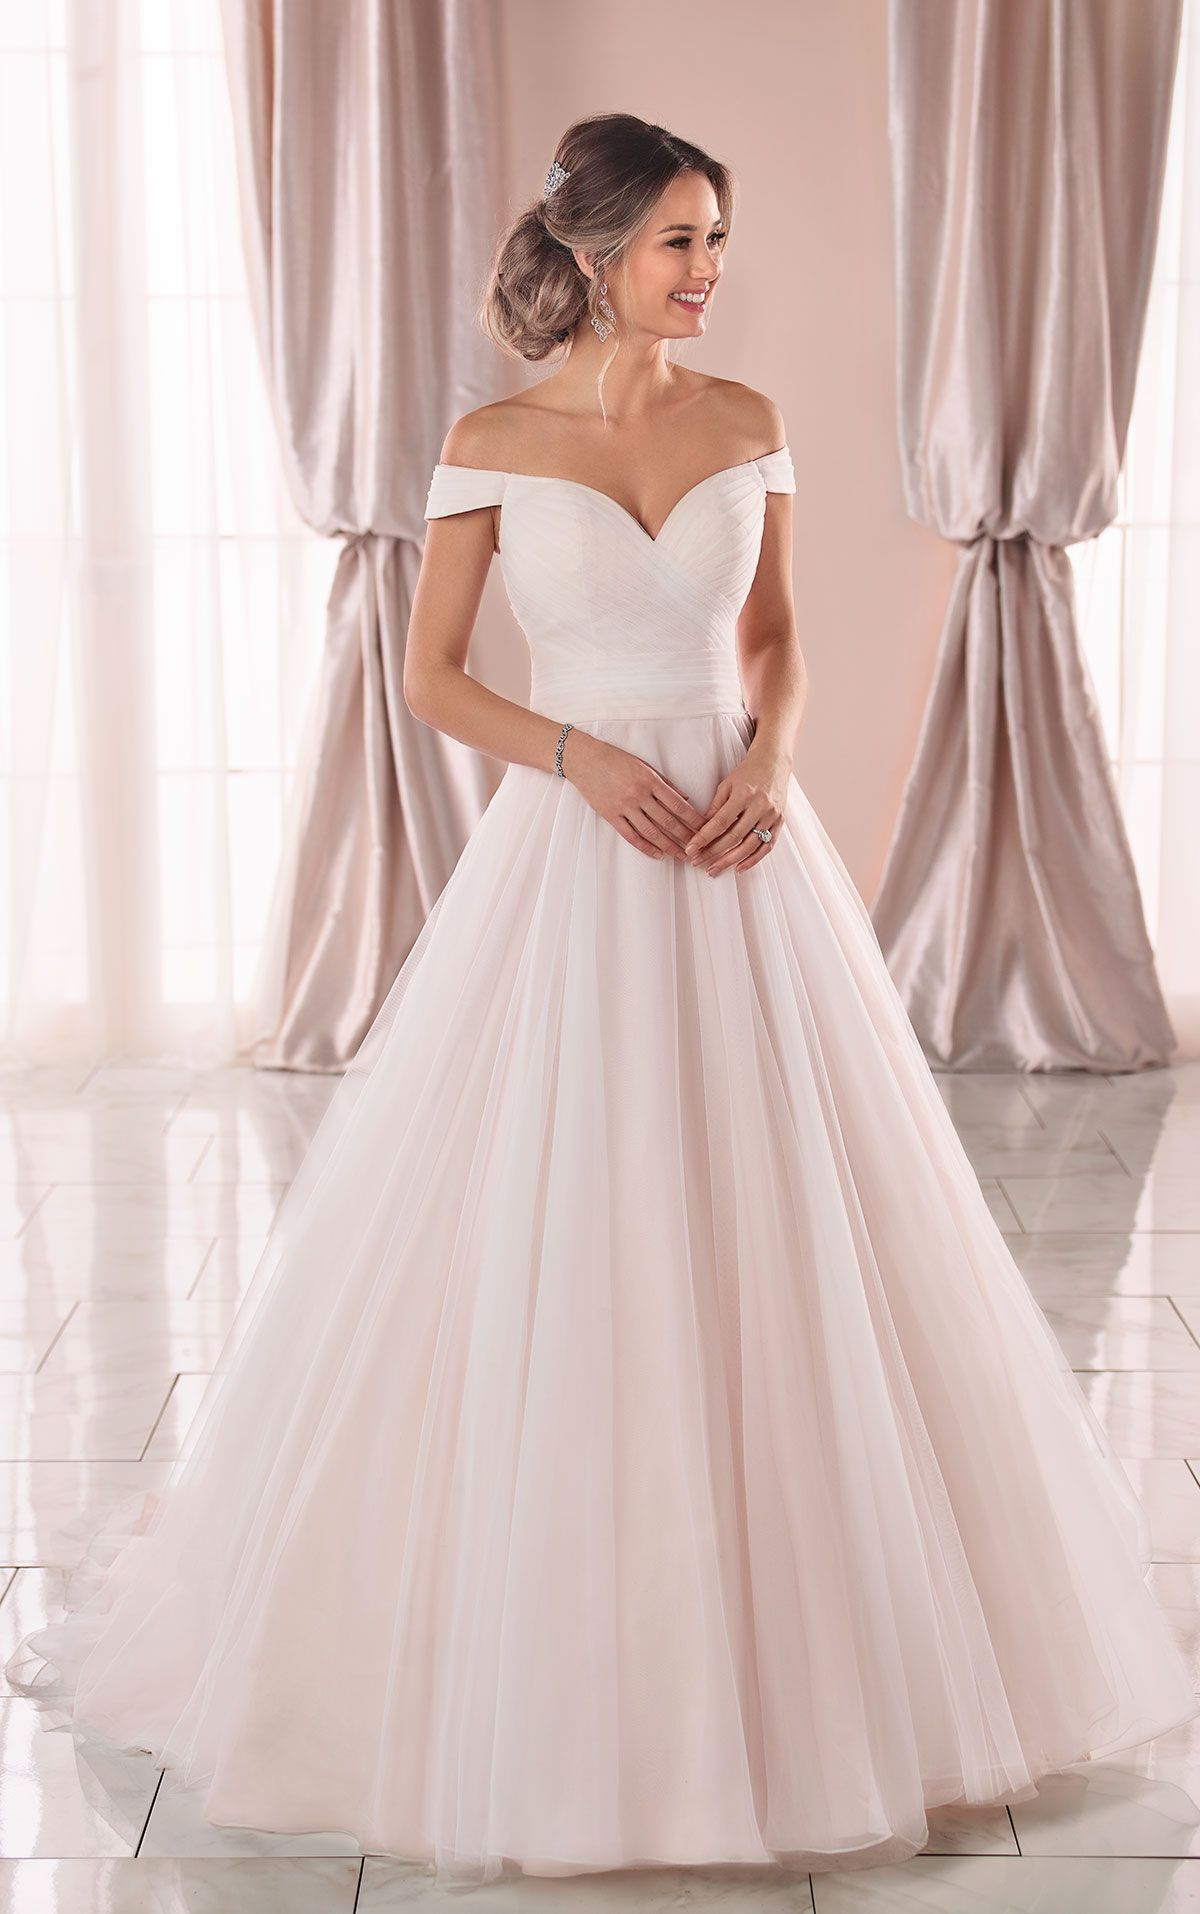 Romantic Ruching Ballgown With Off The Shoulder Straps Stella York Wedding Dresses Stella York Wedding Dress York Wedding Dress Tulle Wedding Dress